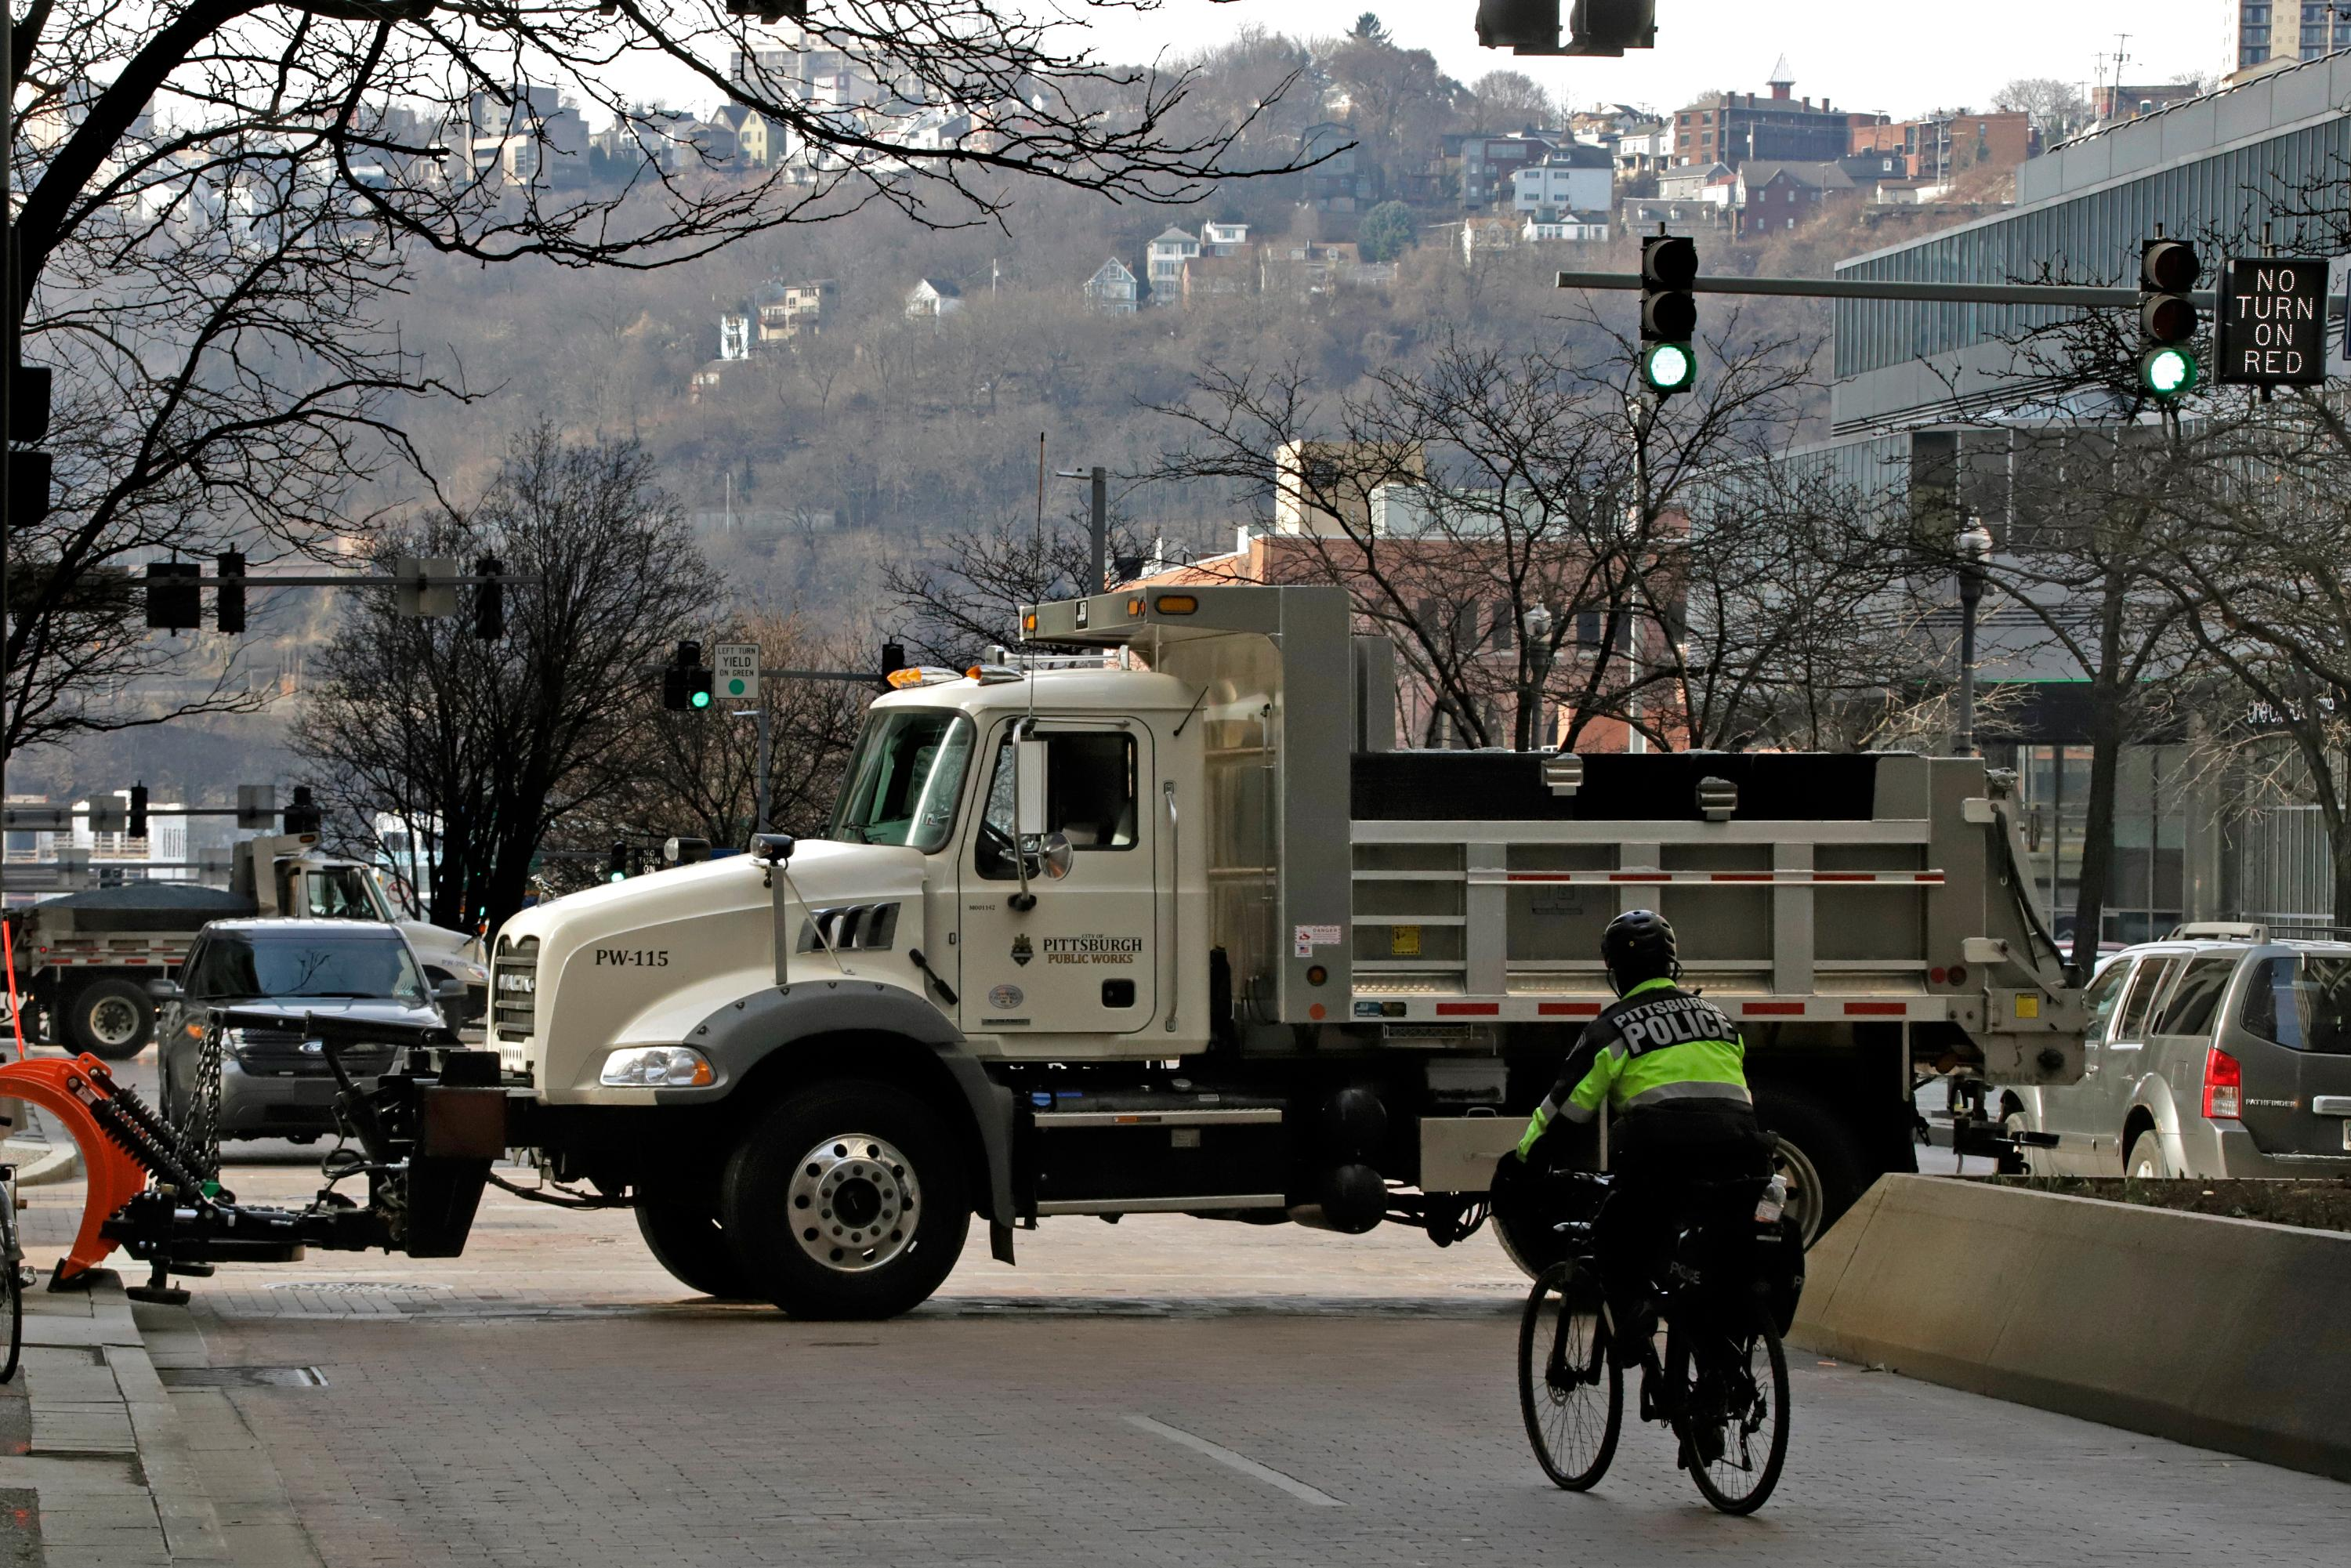 A Pittsburgh public works trucks block traffic on Grant St. in front of the Allegheny County Courthouse on the second day of the trial for Michael Rosfeld, a former police officer in East Pittsburgh, Pa., Wednesday, March 20, 2019.(AP Photo/Gene J. Puskar)